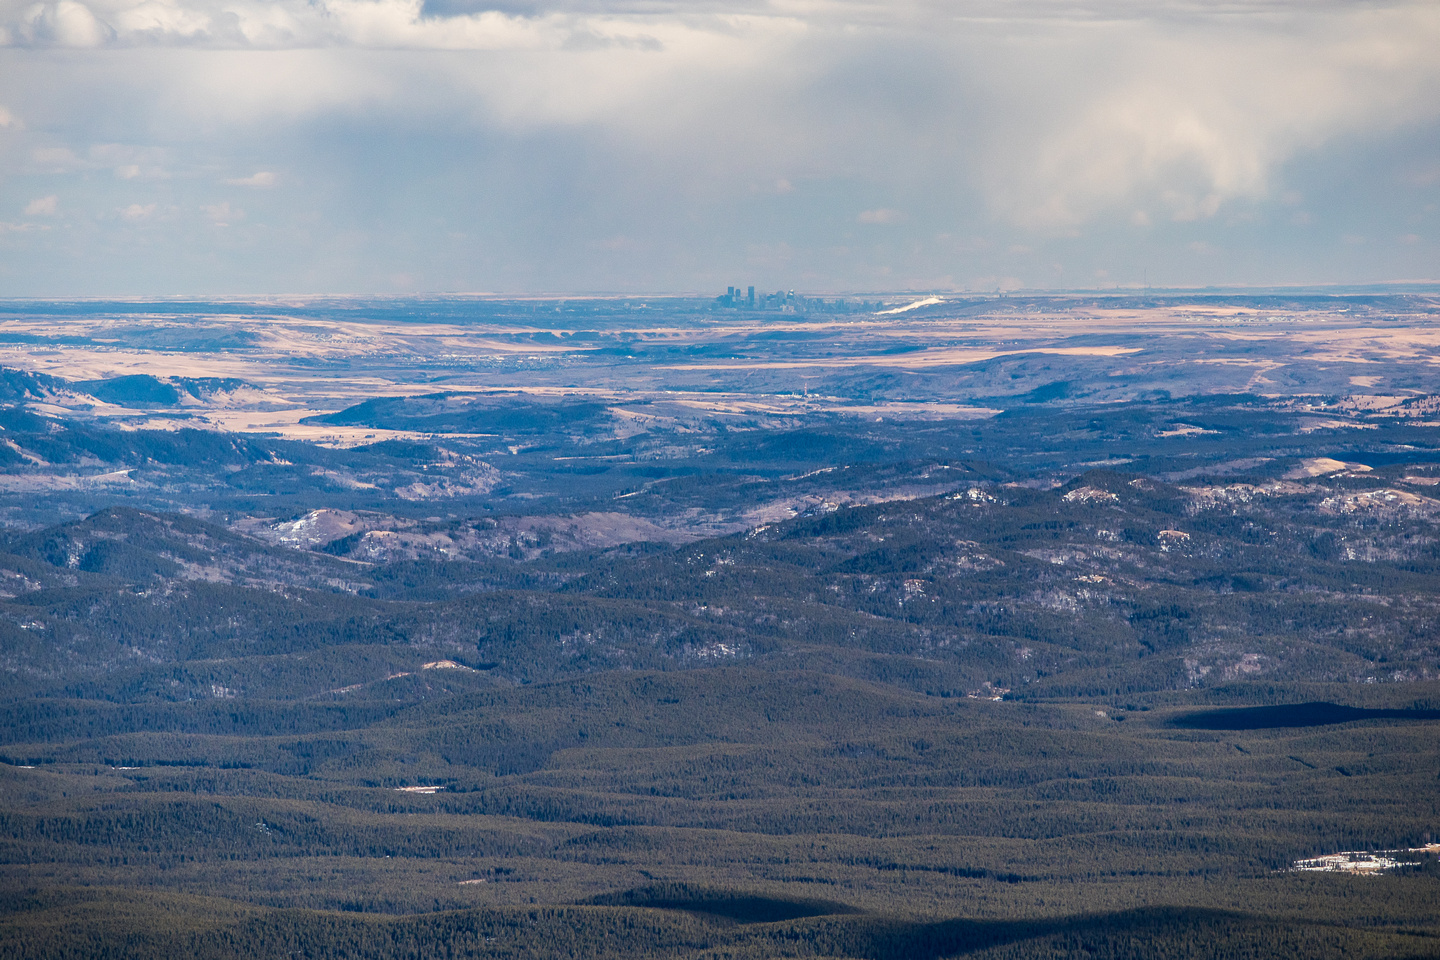 YYC lies over the foothills - clearly showing why Davidson and Waiparous are so visible from there.